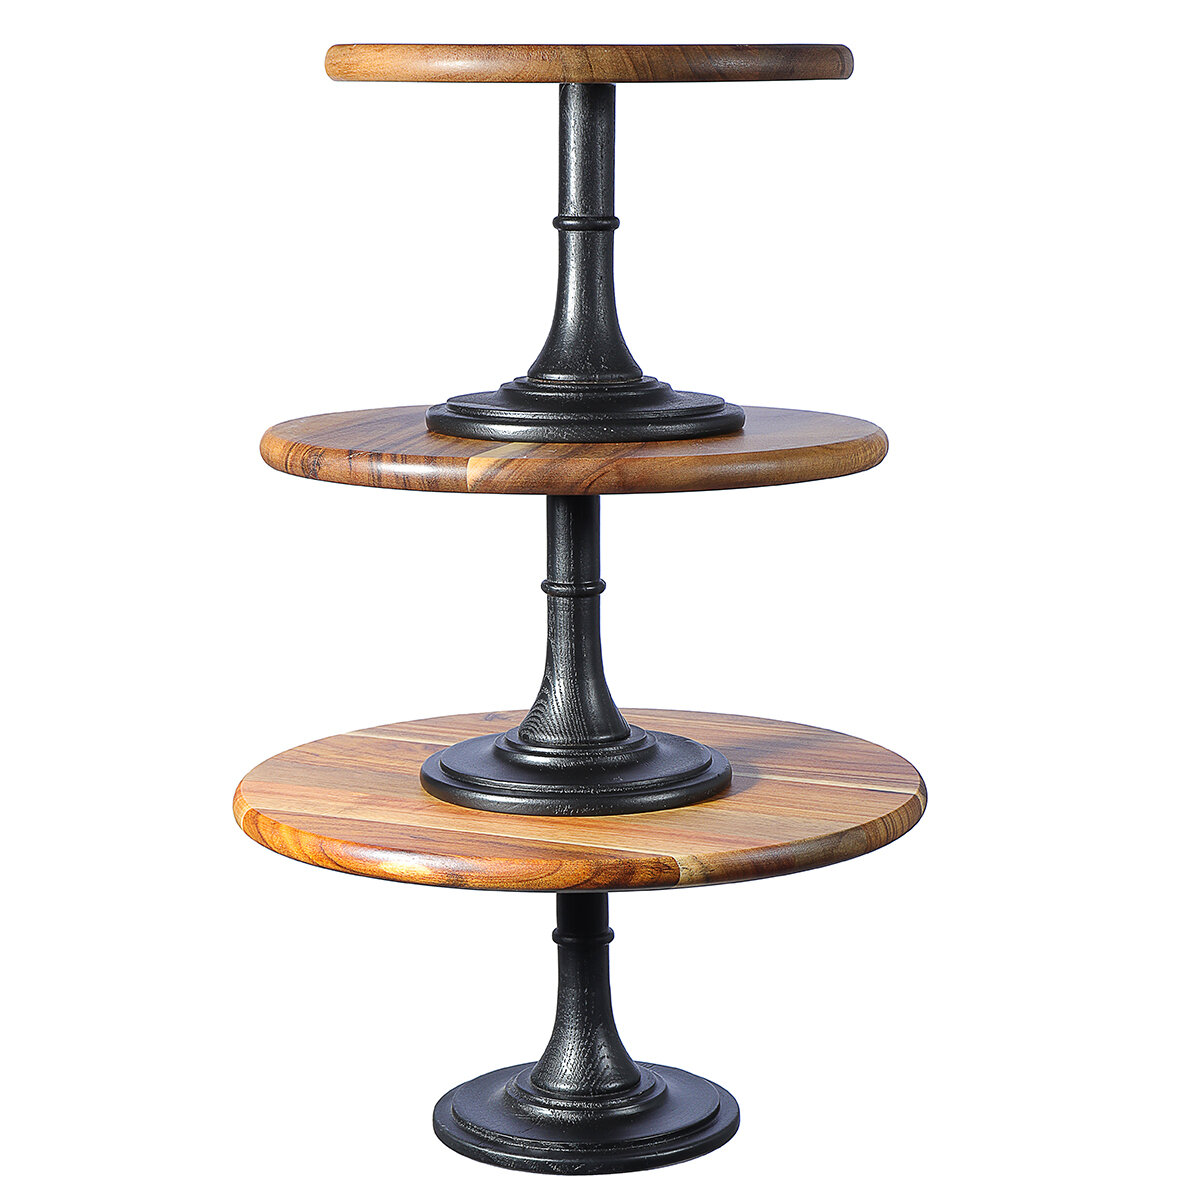 Round Cake Stand Pedestal Dessert Food Display Wedding Party Holder Wood Decorations 3 Sizes Cod